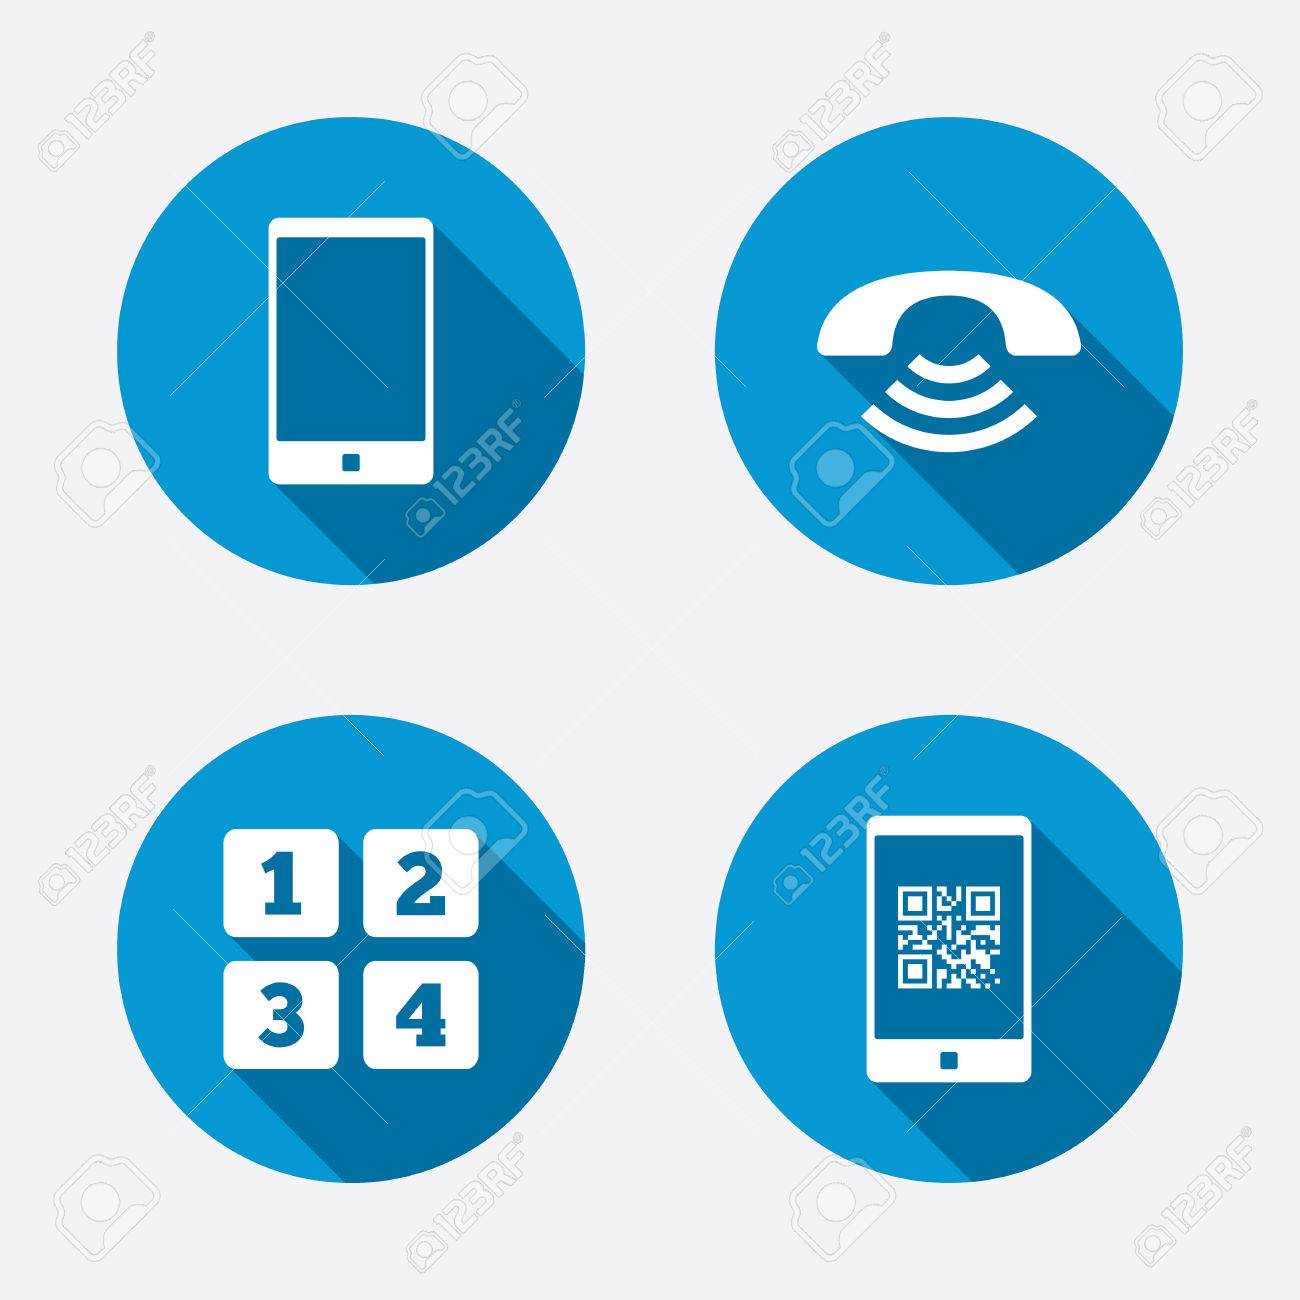 Phone icons smartphone with qr code sign call center support phone icons smartphone with qr code sign call center support symbol cellphone keyboard biocorpaavc Images